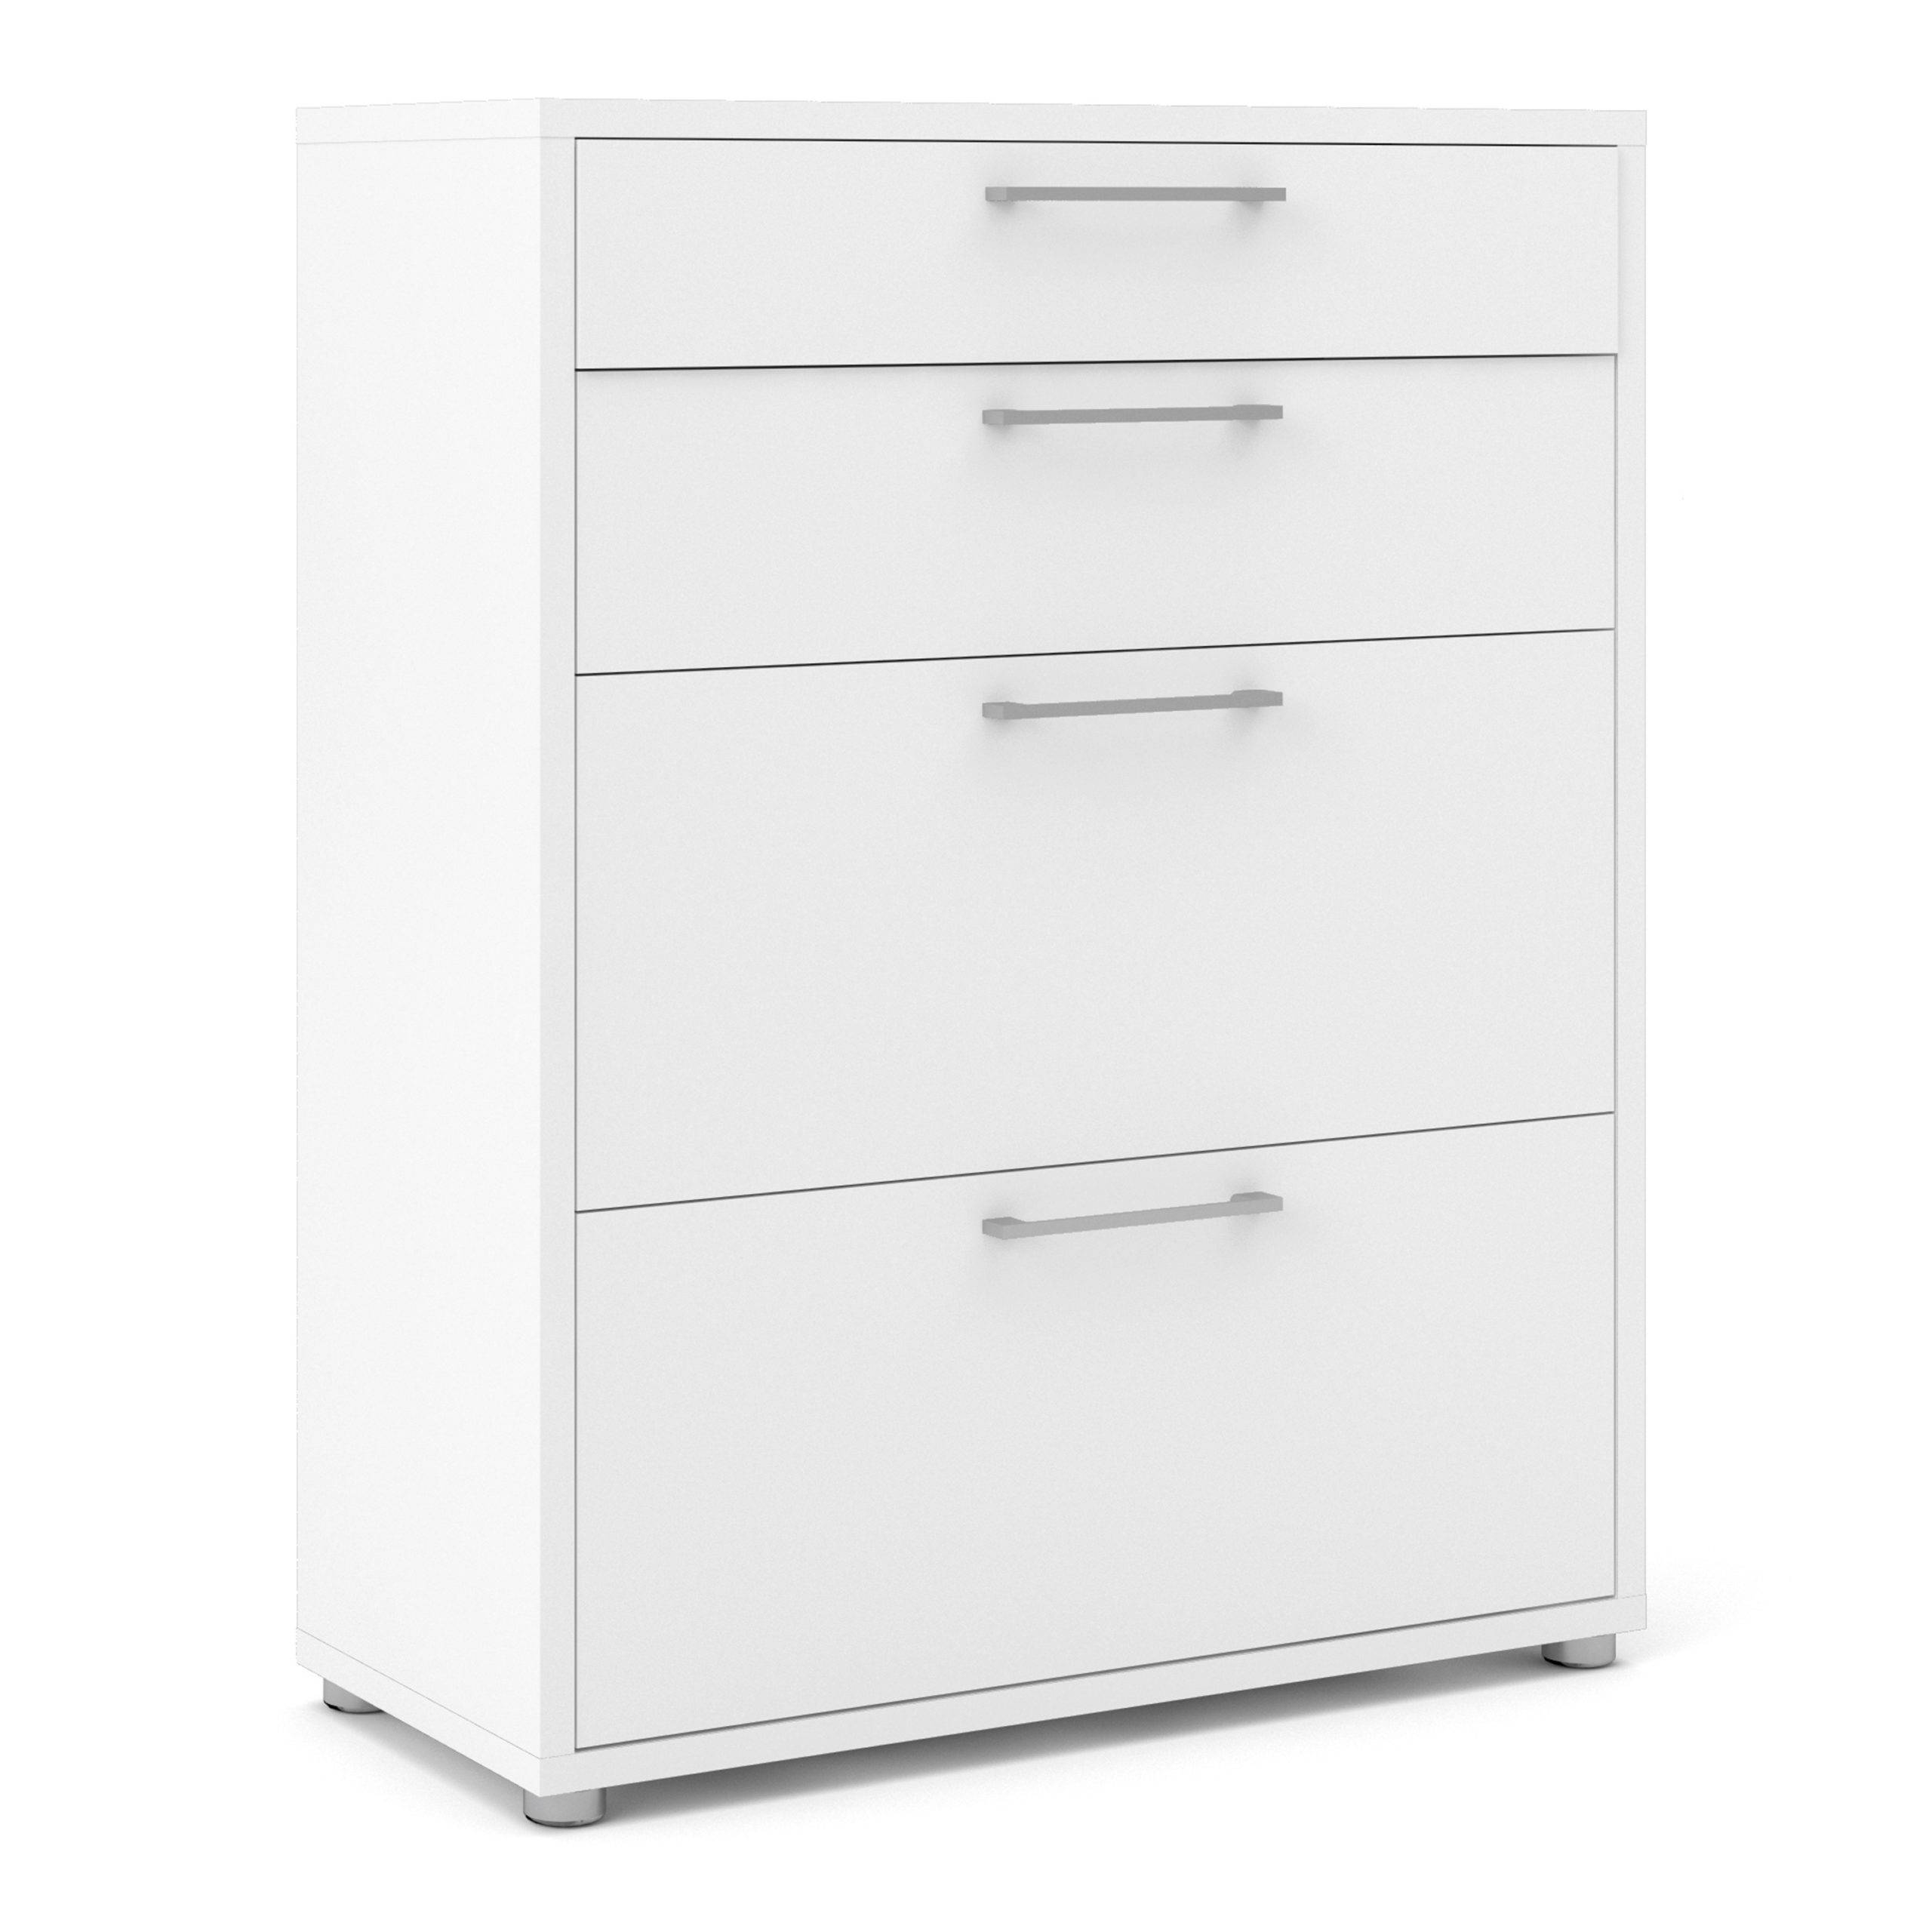 Kansas Office Storage with 2 Drawers + 2 File Drawers in White   Self Assembly